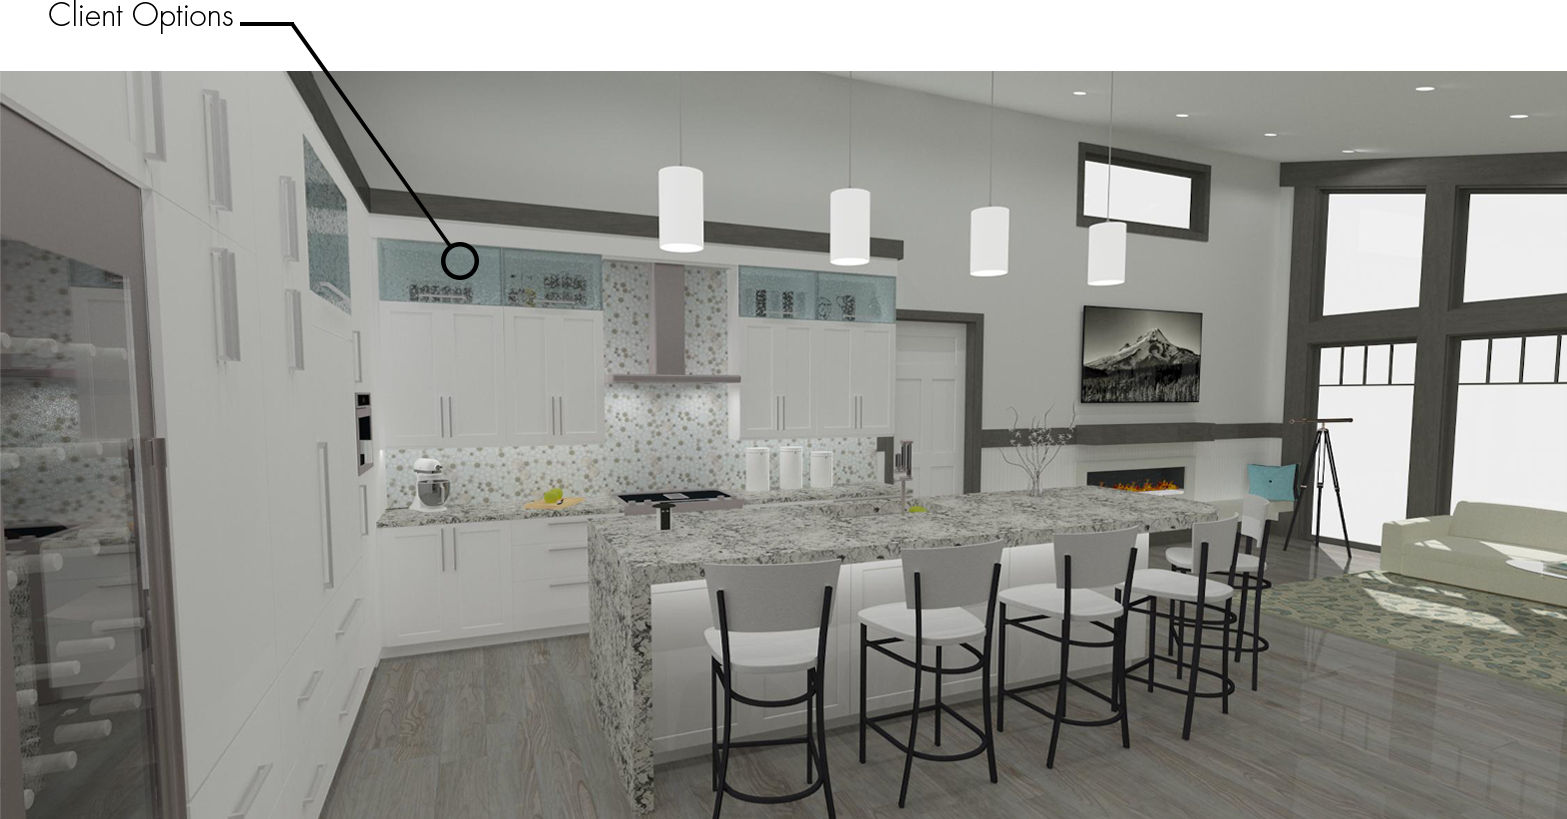 A contemporary kitchen designed in Chief Architect using a rustic, gray and white color palette.